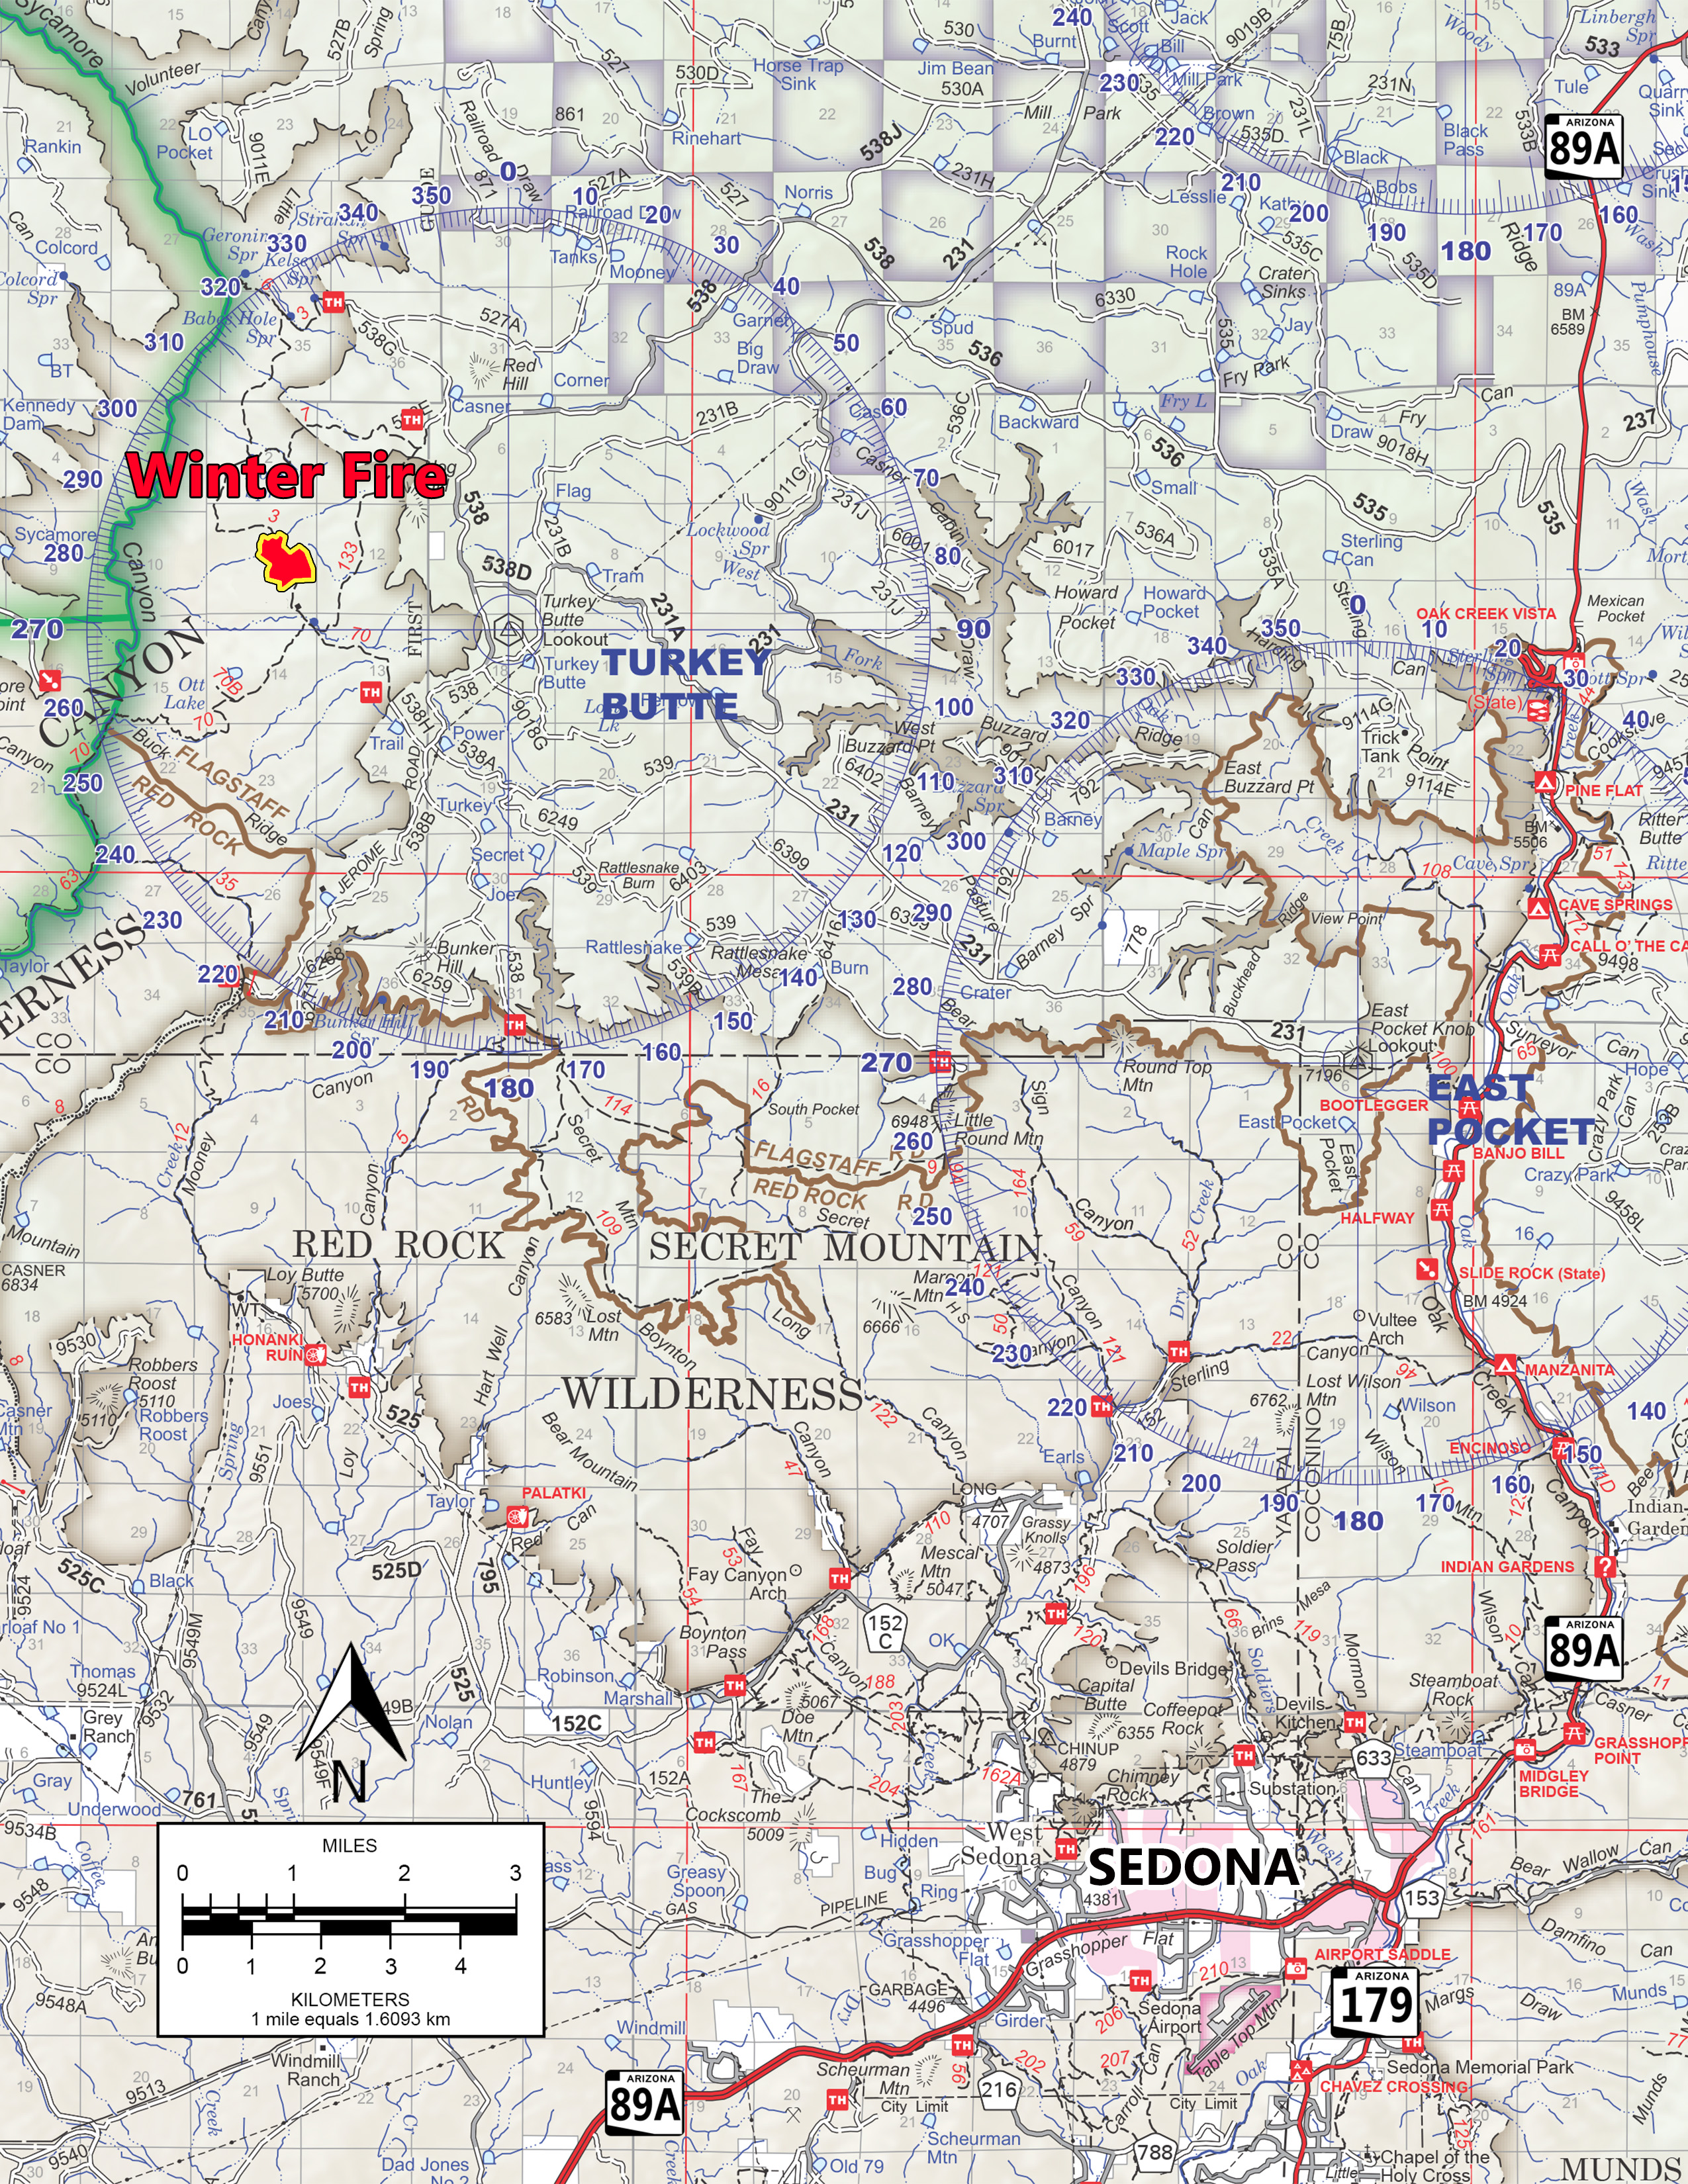 The Winter Fire, located in the Sycamore Canyon Wilderness approximately 15 miles northwest of Sedona, is currently 65 acres and approximately 75 percent contained.